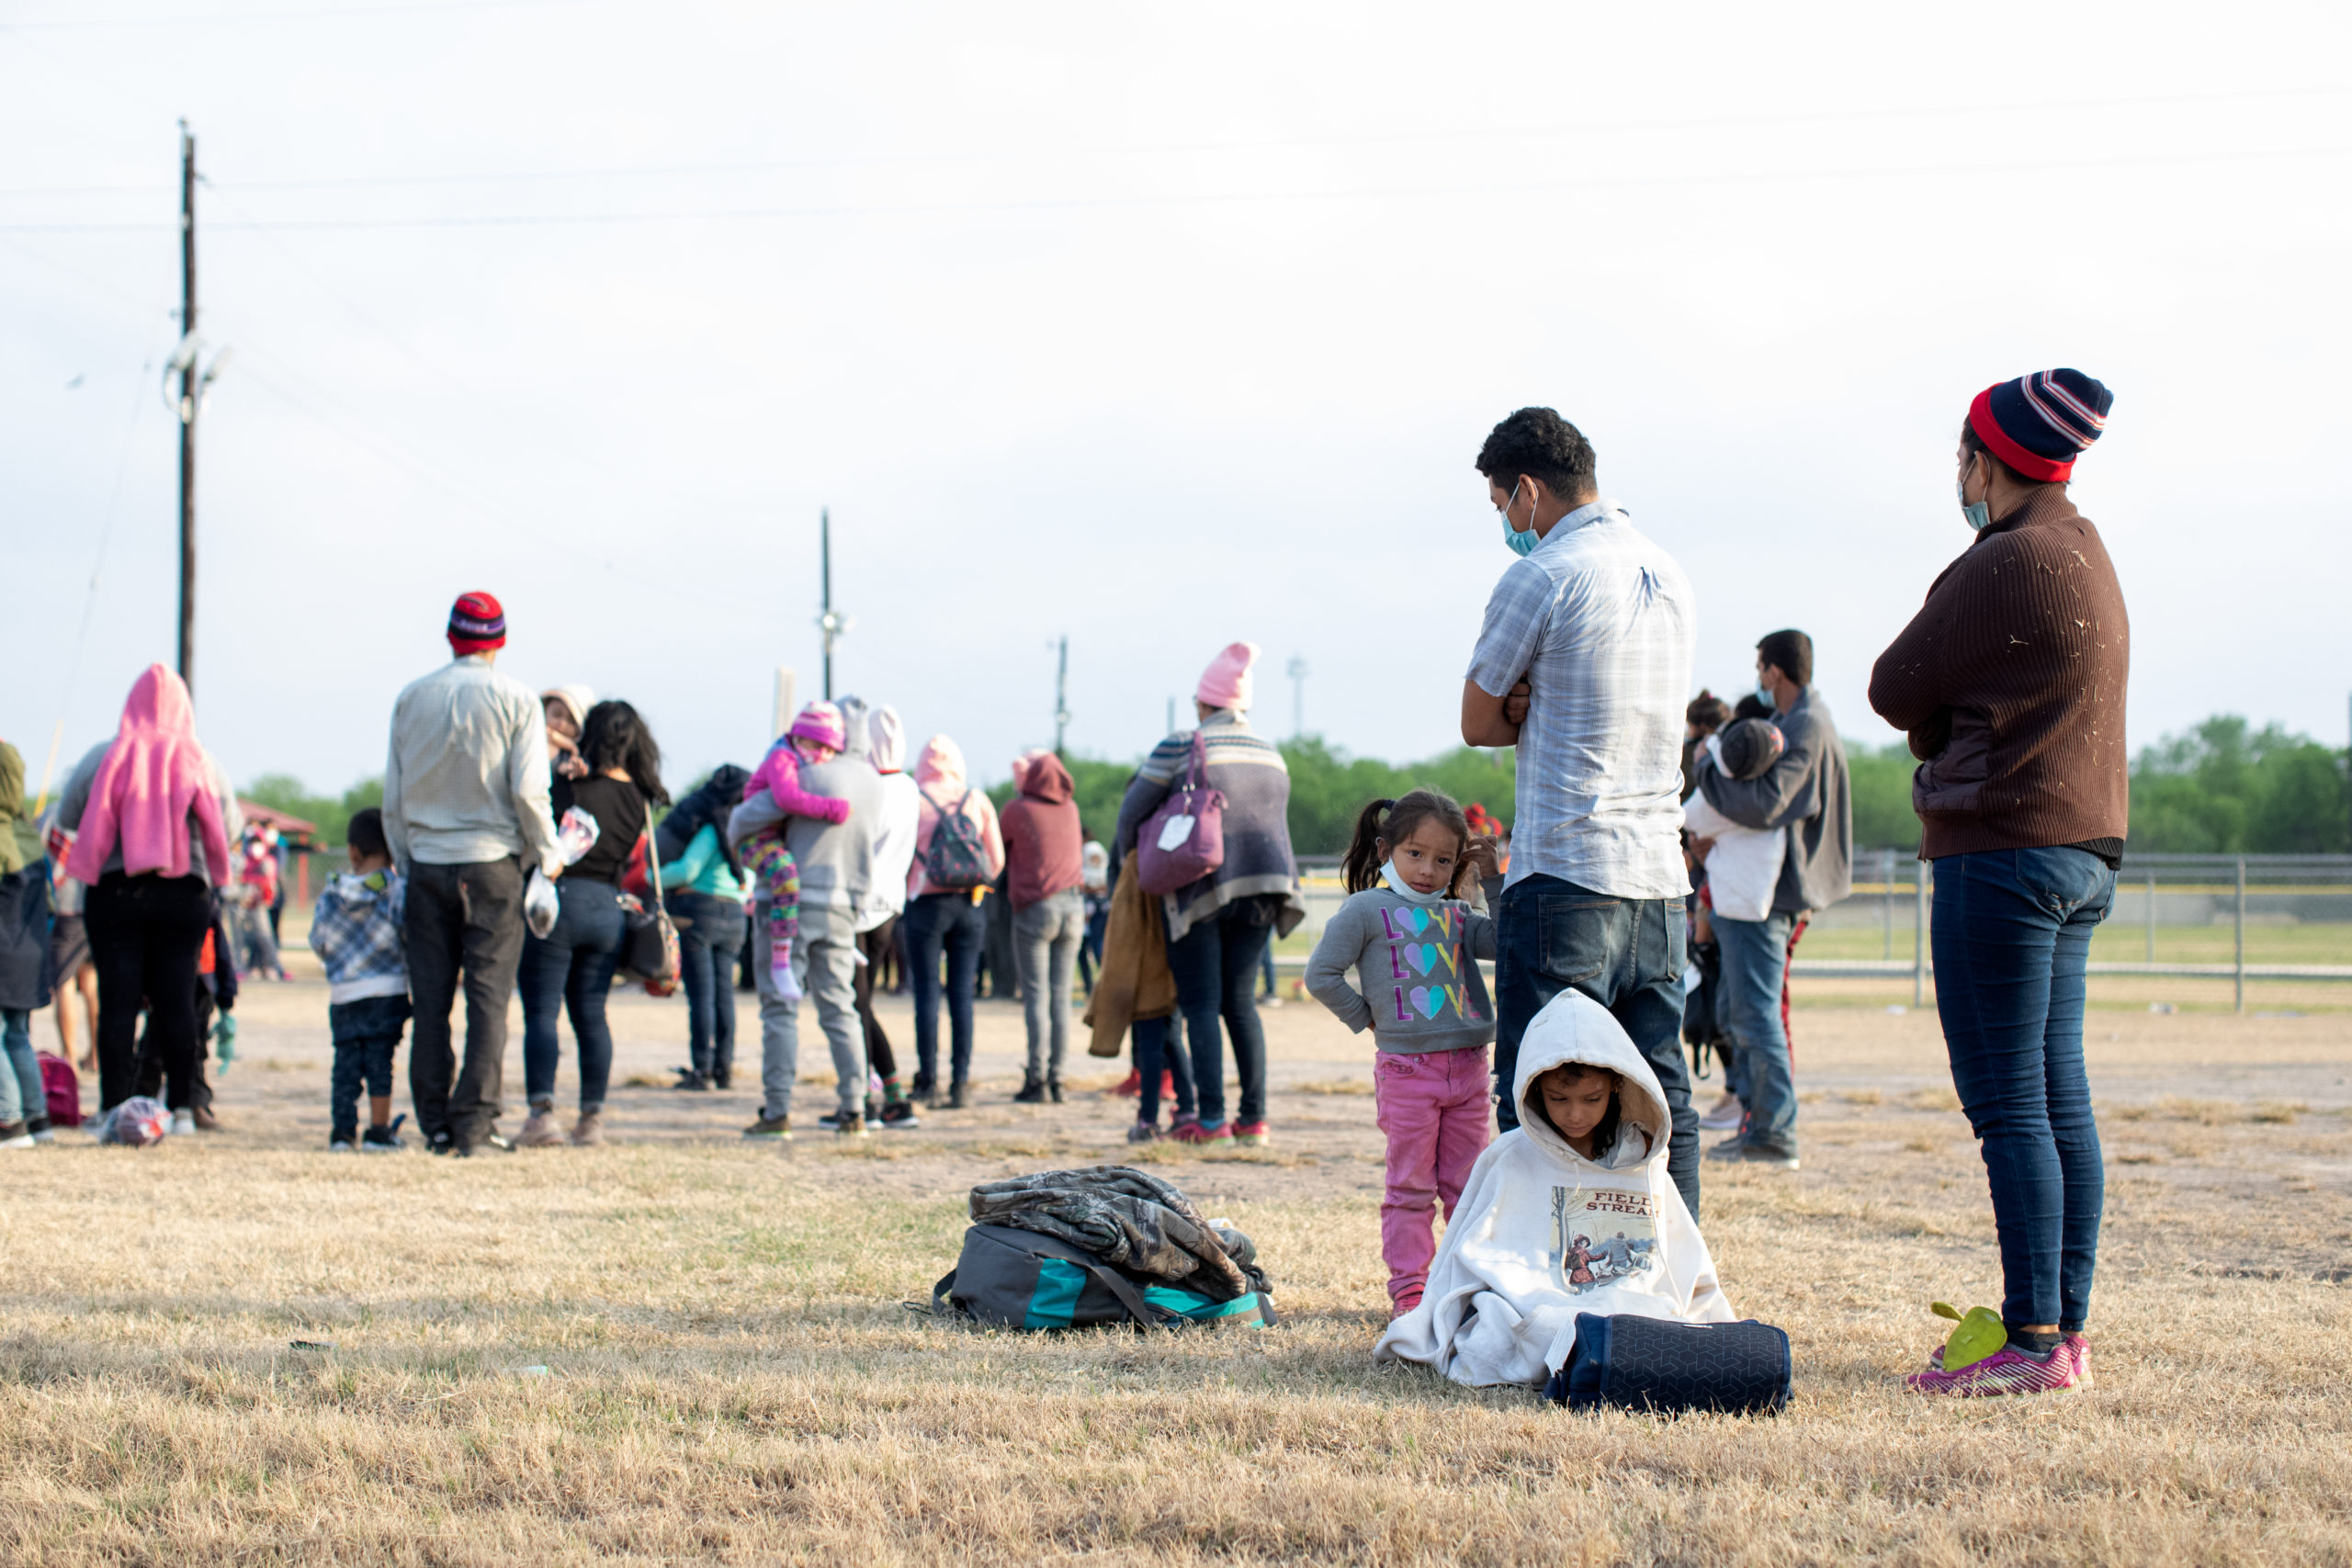 Illegal migrants wait on the side of a public road to be processed and taken to Customs and Border Protection facilities in La Joya, Texas on March 27, 2021. (Kaylee Greenlee - Daily Caller News Foundation)